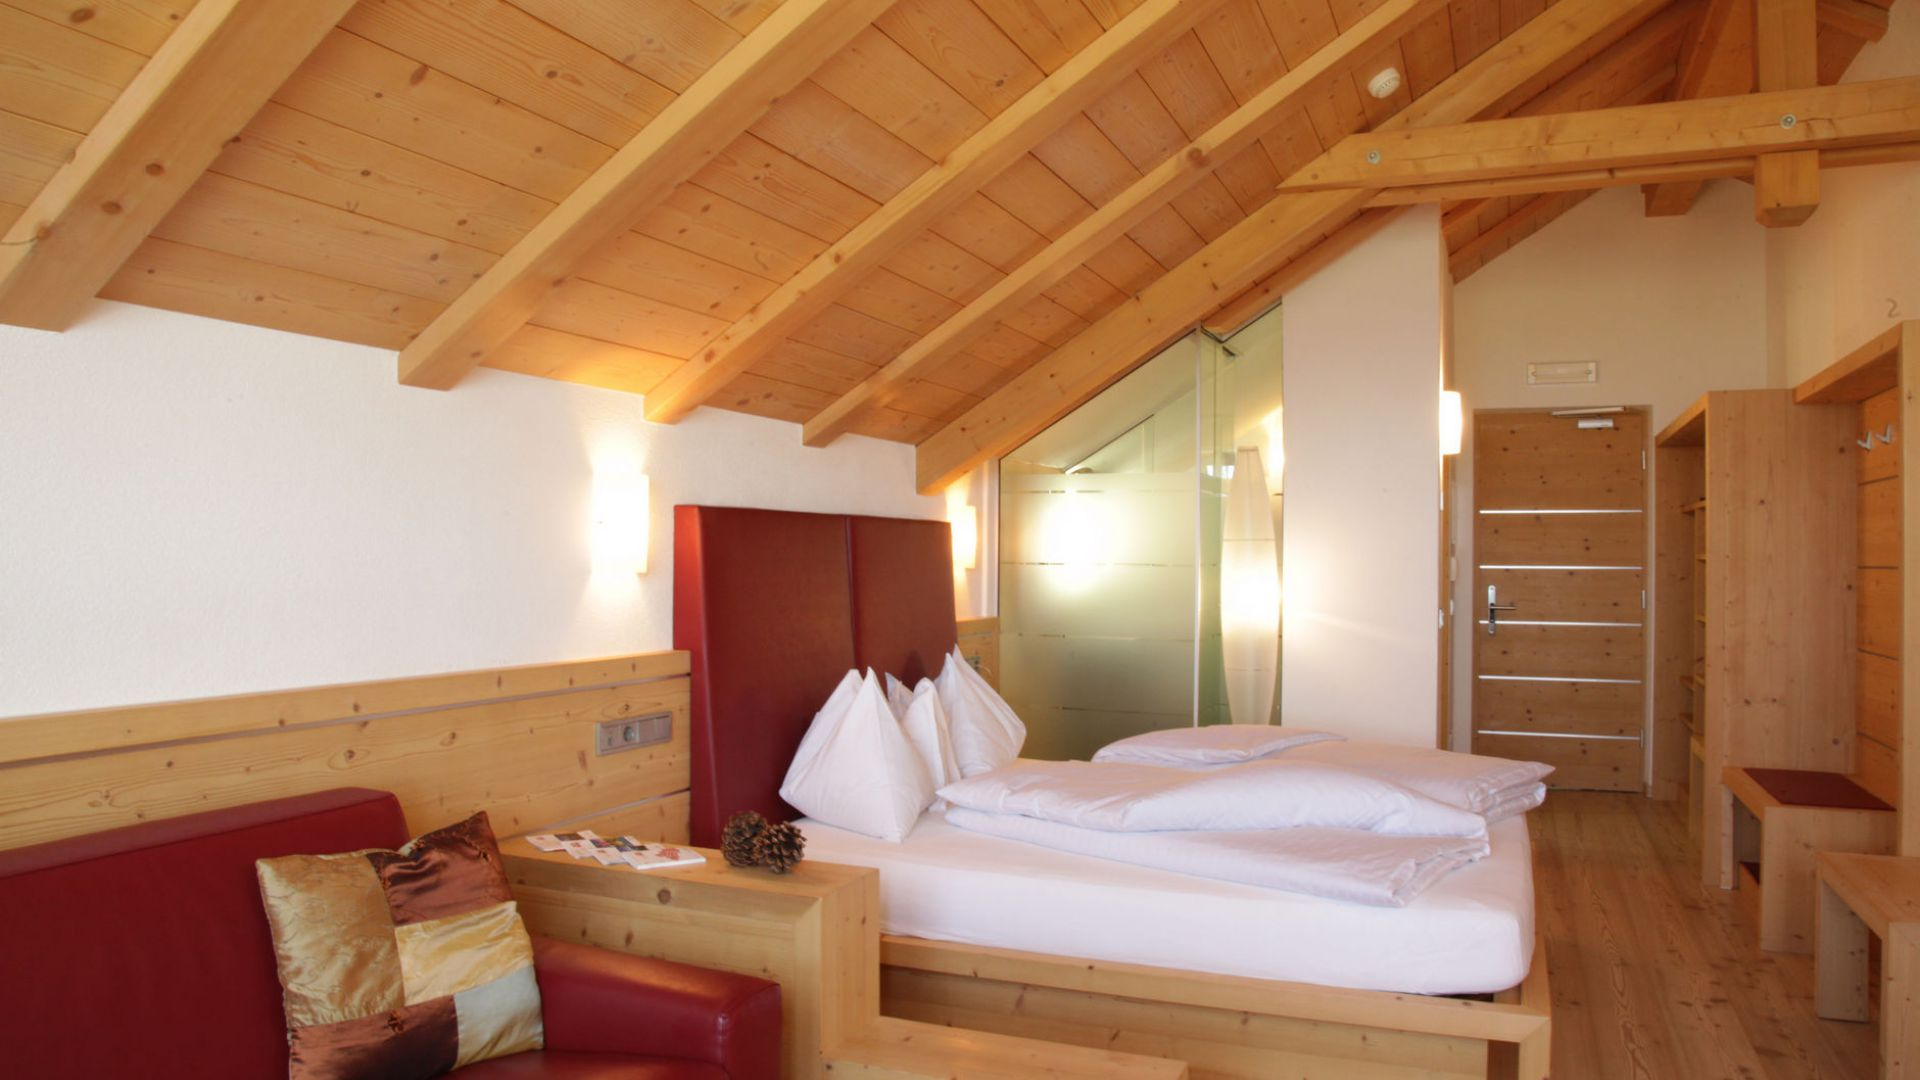 Image: Rooms in Alta Badia